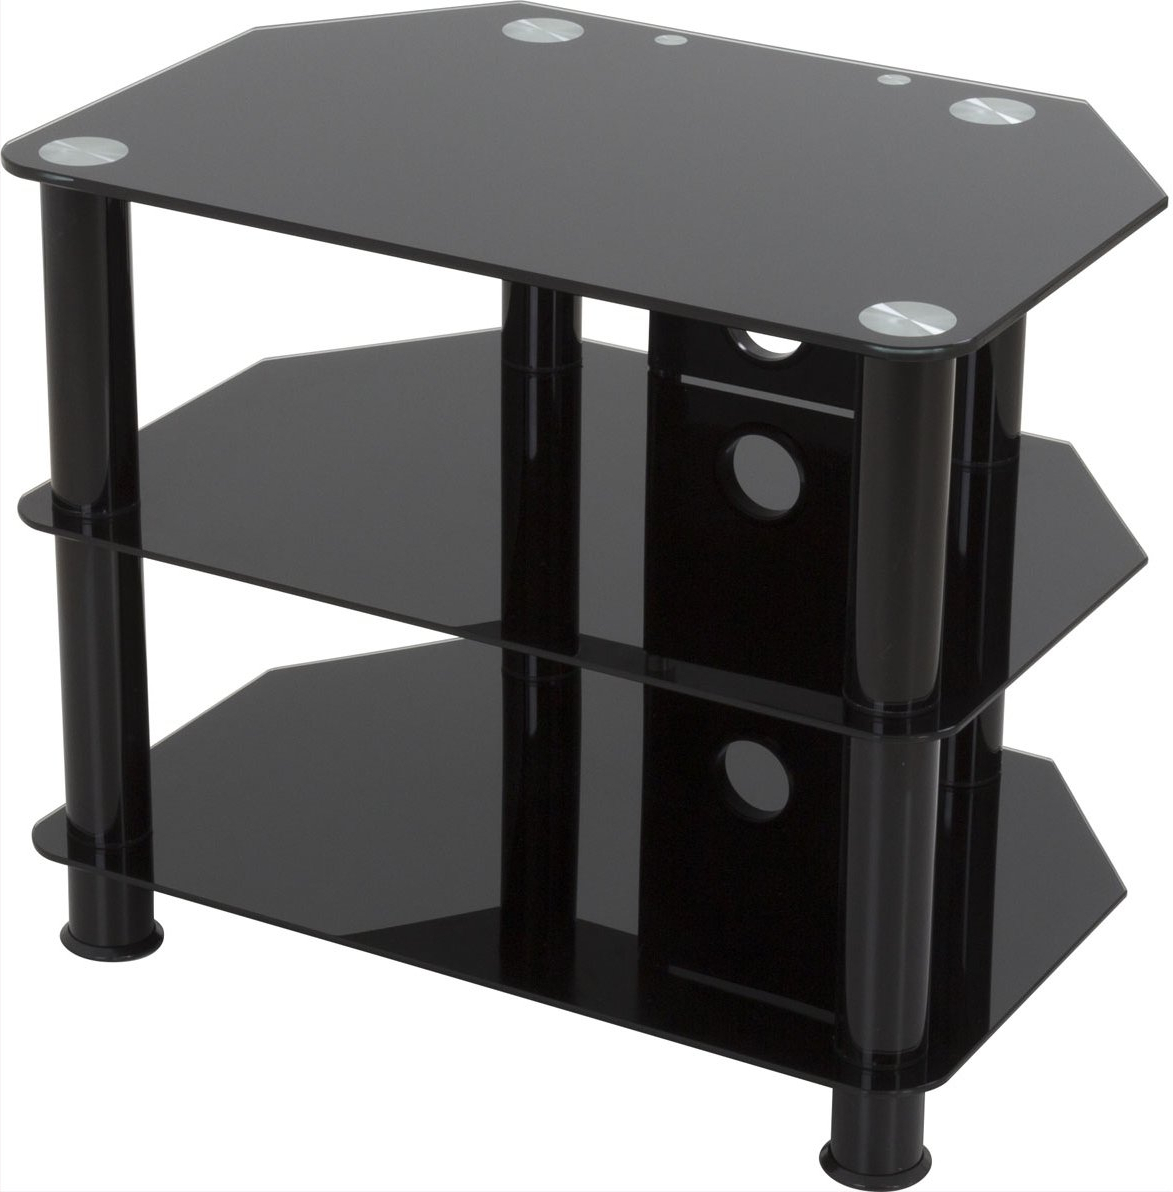 Avf Sdc600Cmbb Tv Stands Within Latest Black Glass Tv Stands (View 3 of 20)